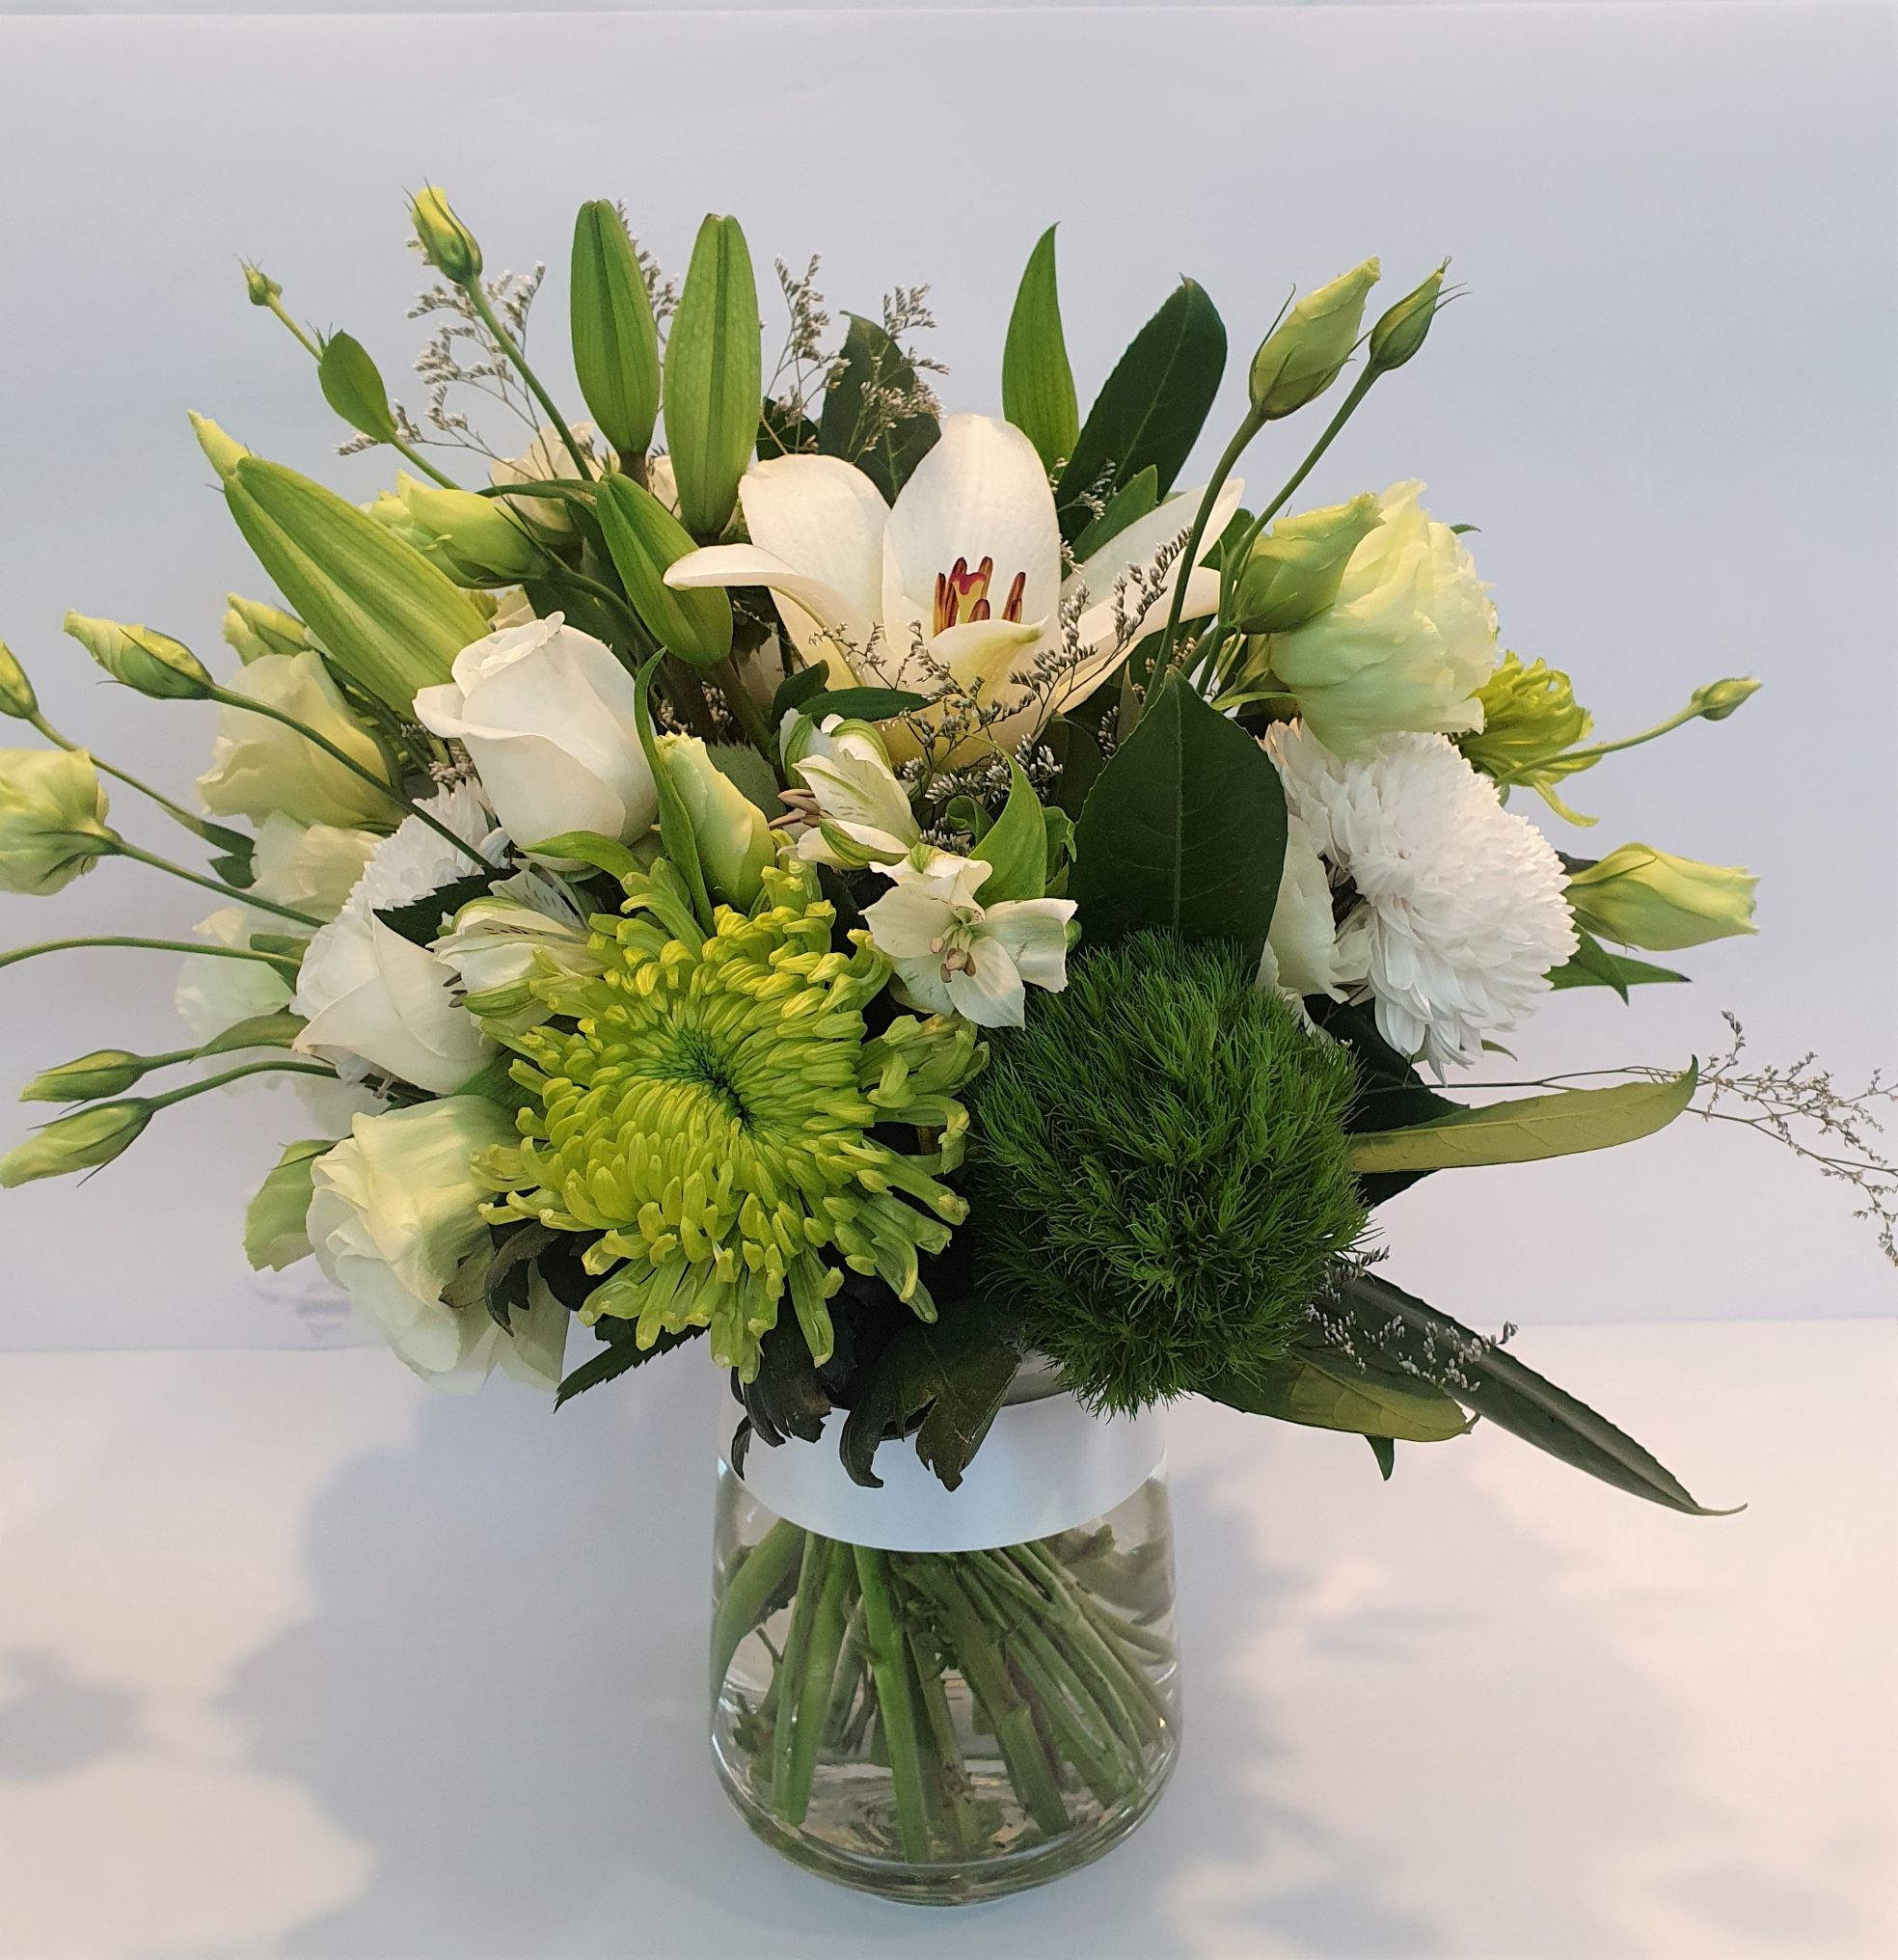 Simplicity - Elegant green and white bouquet in a glass vase. Medium height suitable to sit on a table - Sympathy / Funerals,Any Occasion,Mothers Day